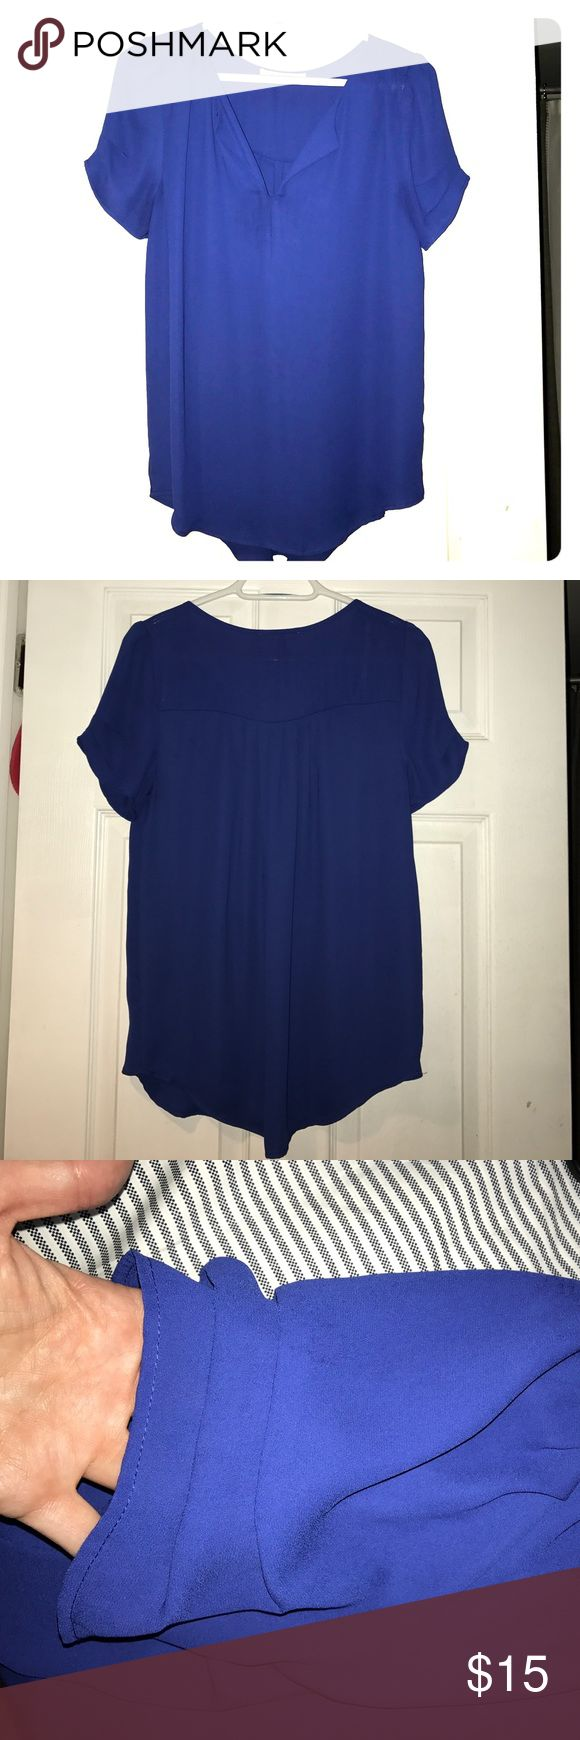 Royal blue blouse with beautiful sleeve detail S This blouse is super lightweight and beautiful on. Perfect with slacks or jeans. Daniel Rainn Tops Blouses